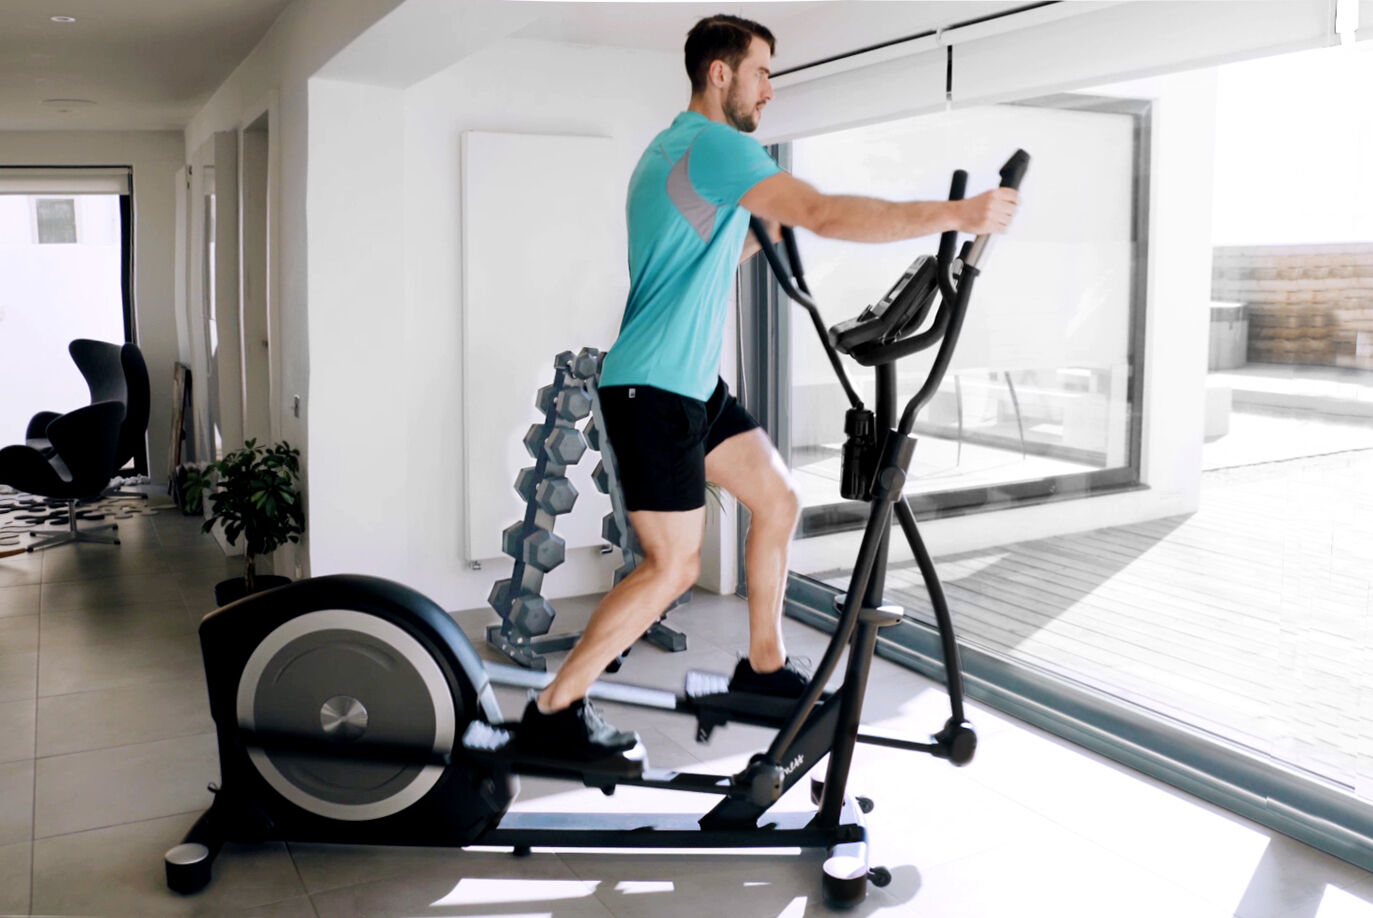 Gym Elliptical | Commercial Quality Grade and Features